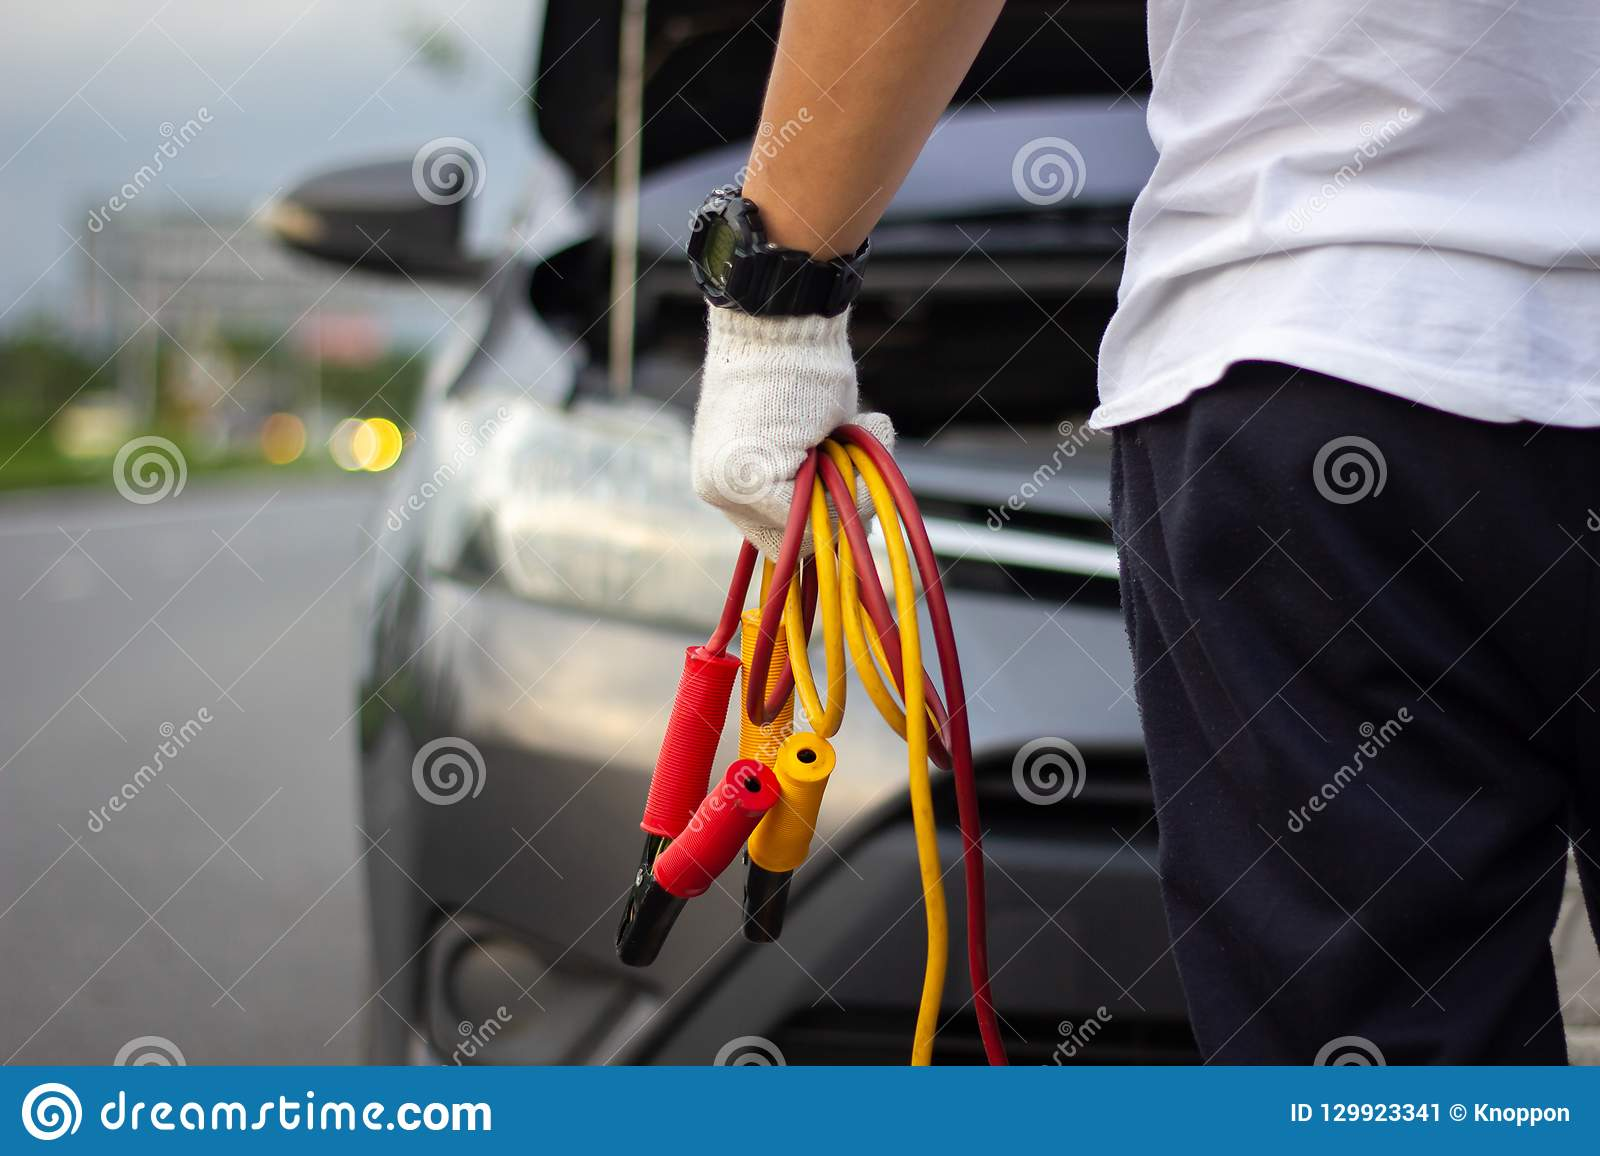 Car mechanic man holding battery jumper cables to charge a dead